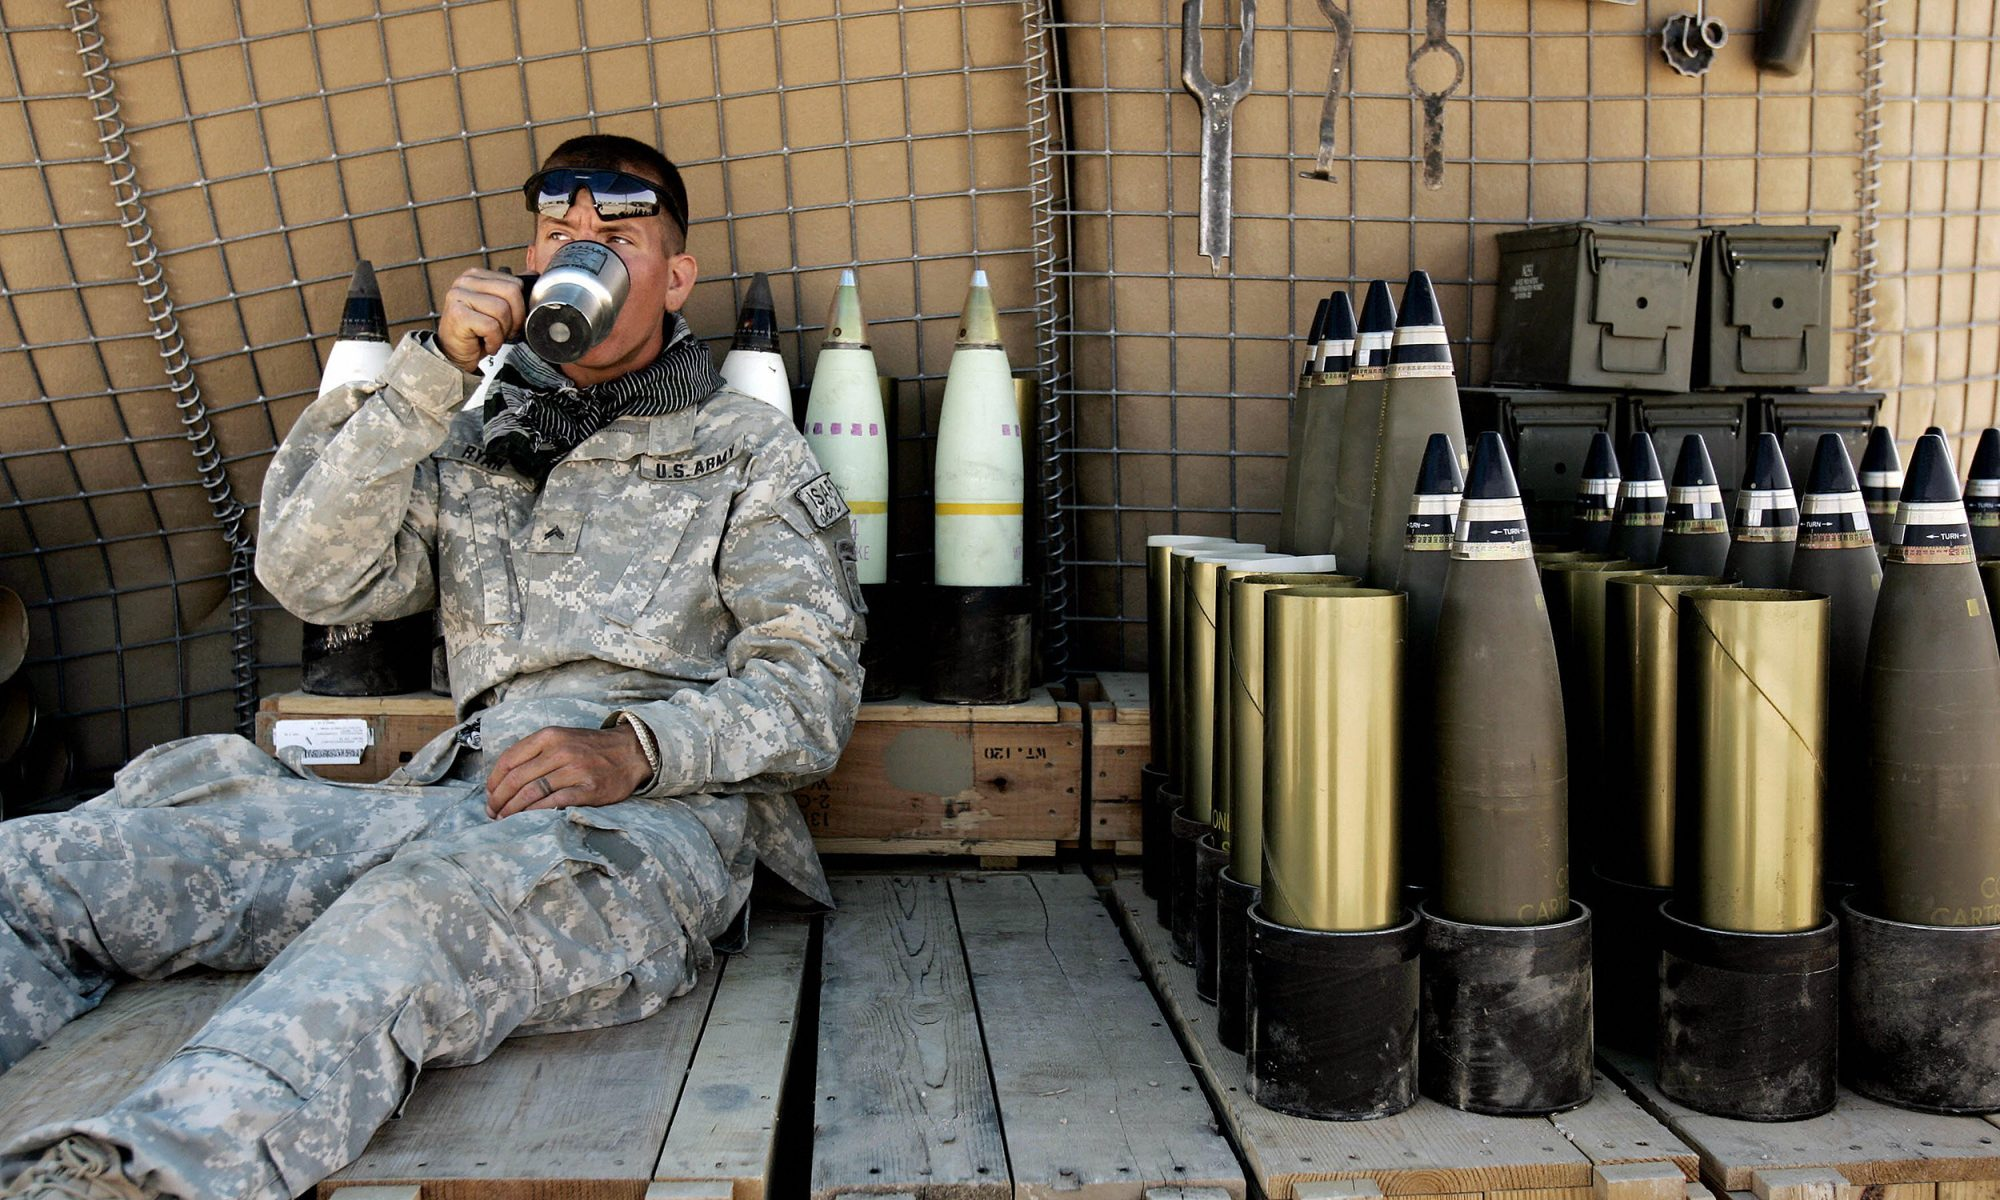 EC: Coffee Has Been Helping American Soldiers Since the Civil War